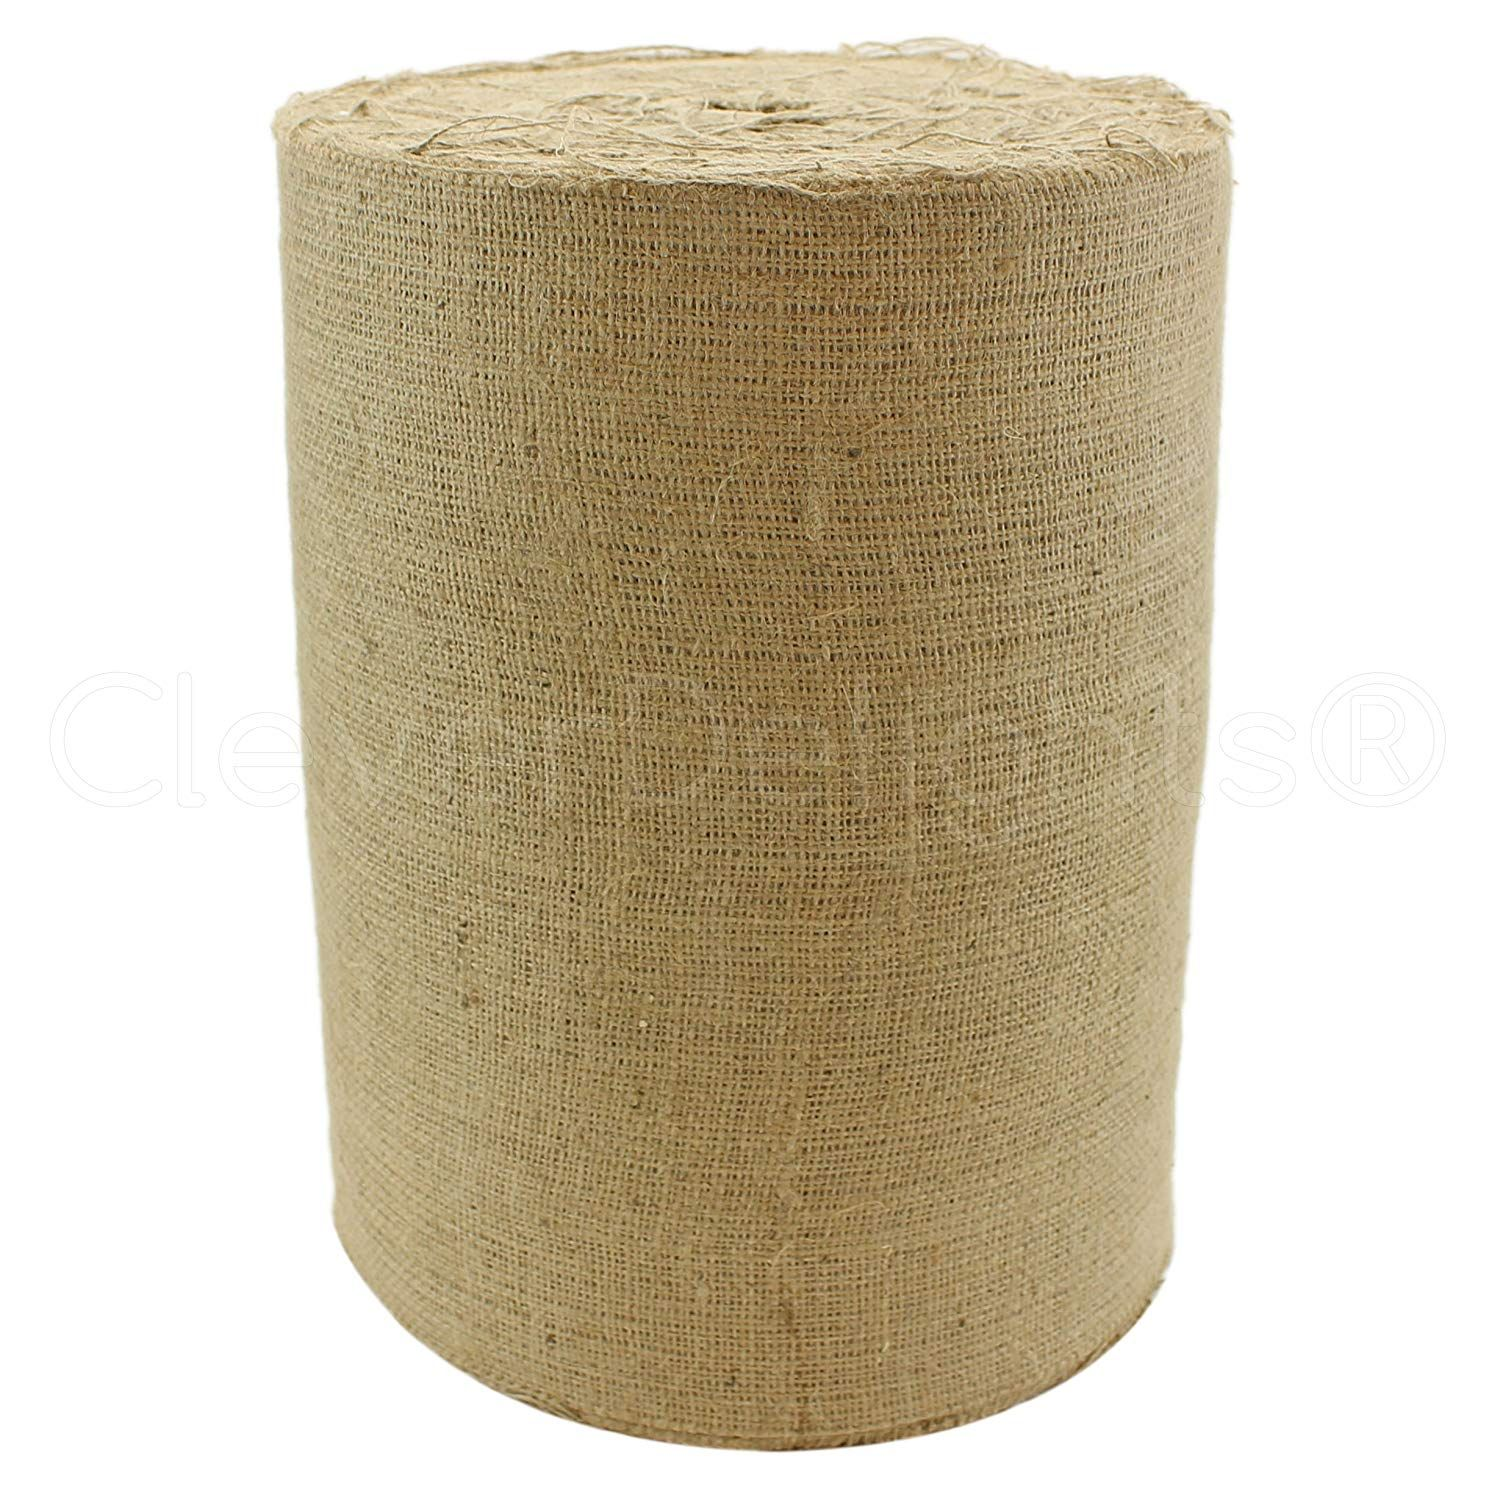 Cleverdelights 14 Natural Burlap Industrial Grade 100 Yard Roll Tight Weave Jute Burlap Fabric To View Further For This I In 2020 Burlap Fabric Burlap Weaving